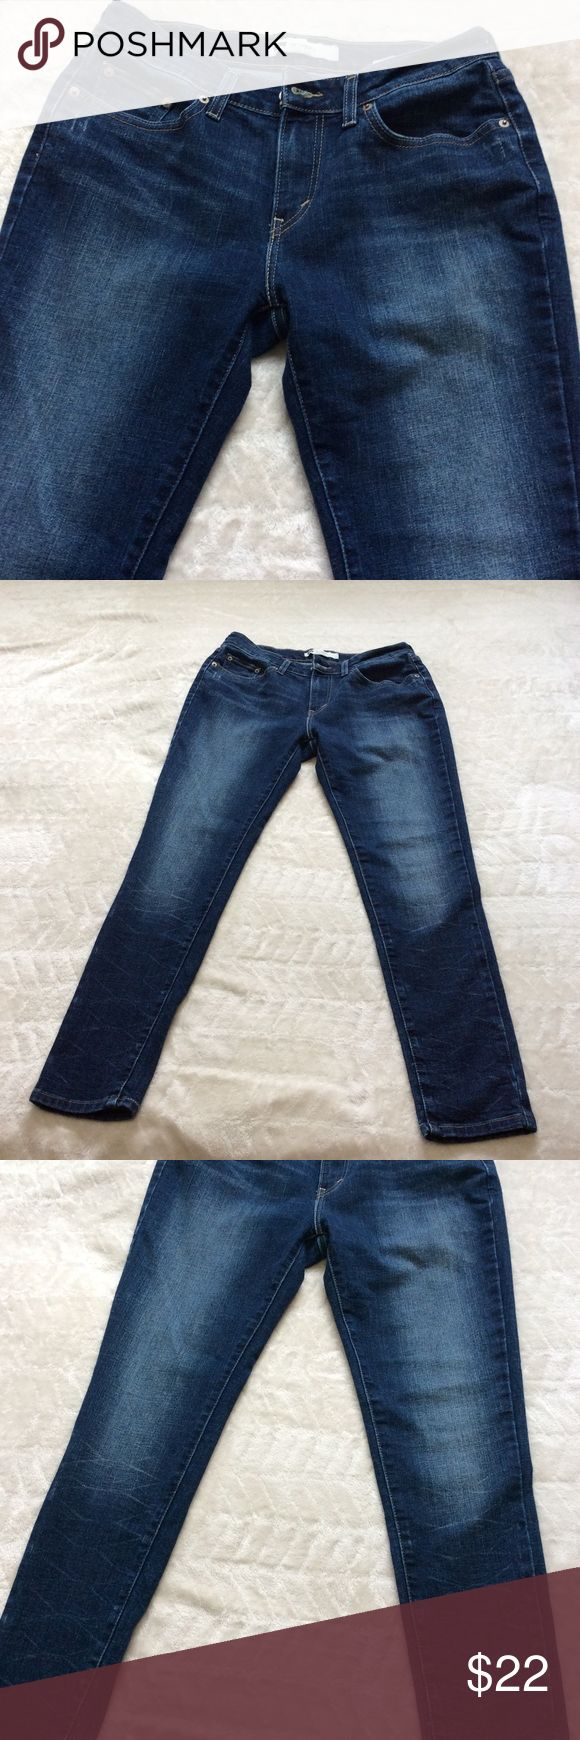 Practically Brand New Levis 535 Leggings Size 11 Levis 535 Leggins look practically brand new. These are in great shape. Size 11 Levi's Jeans Skinny